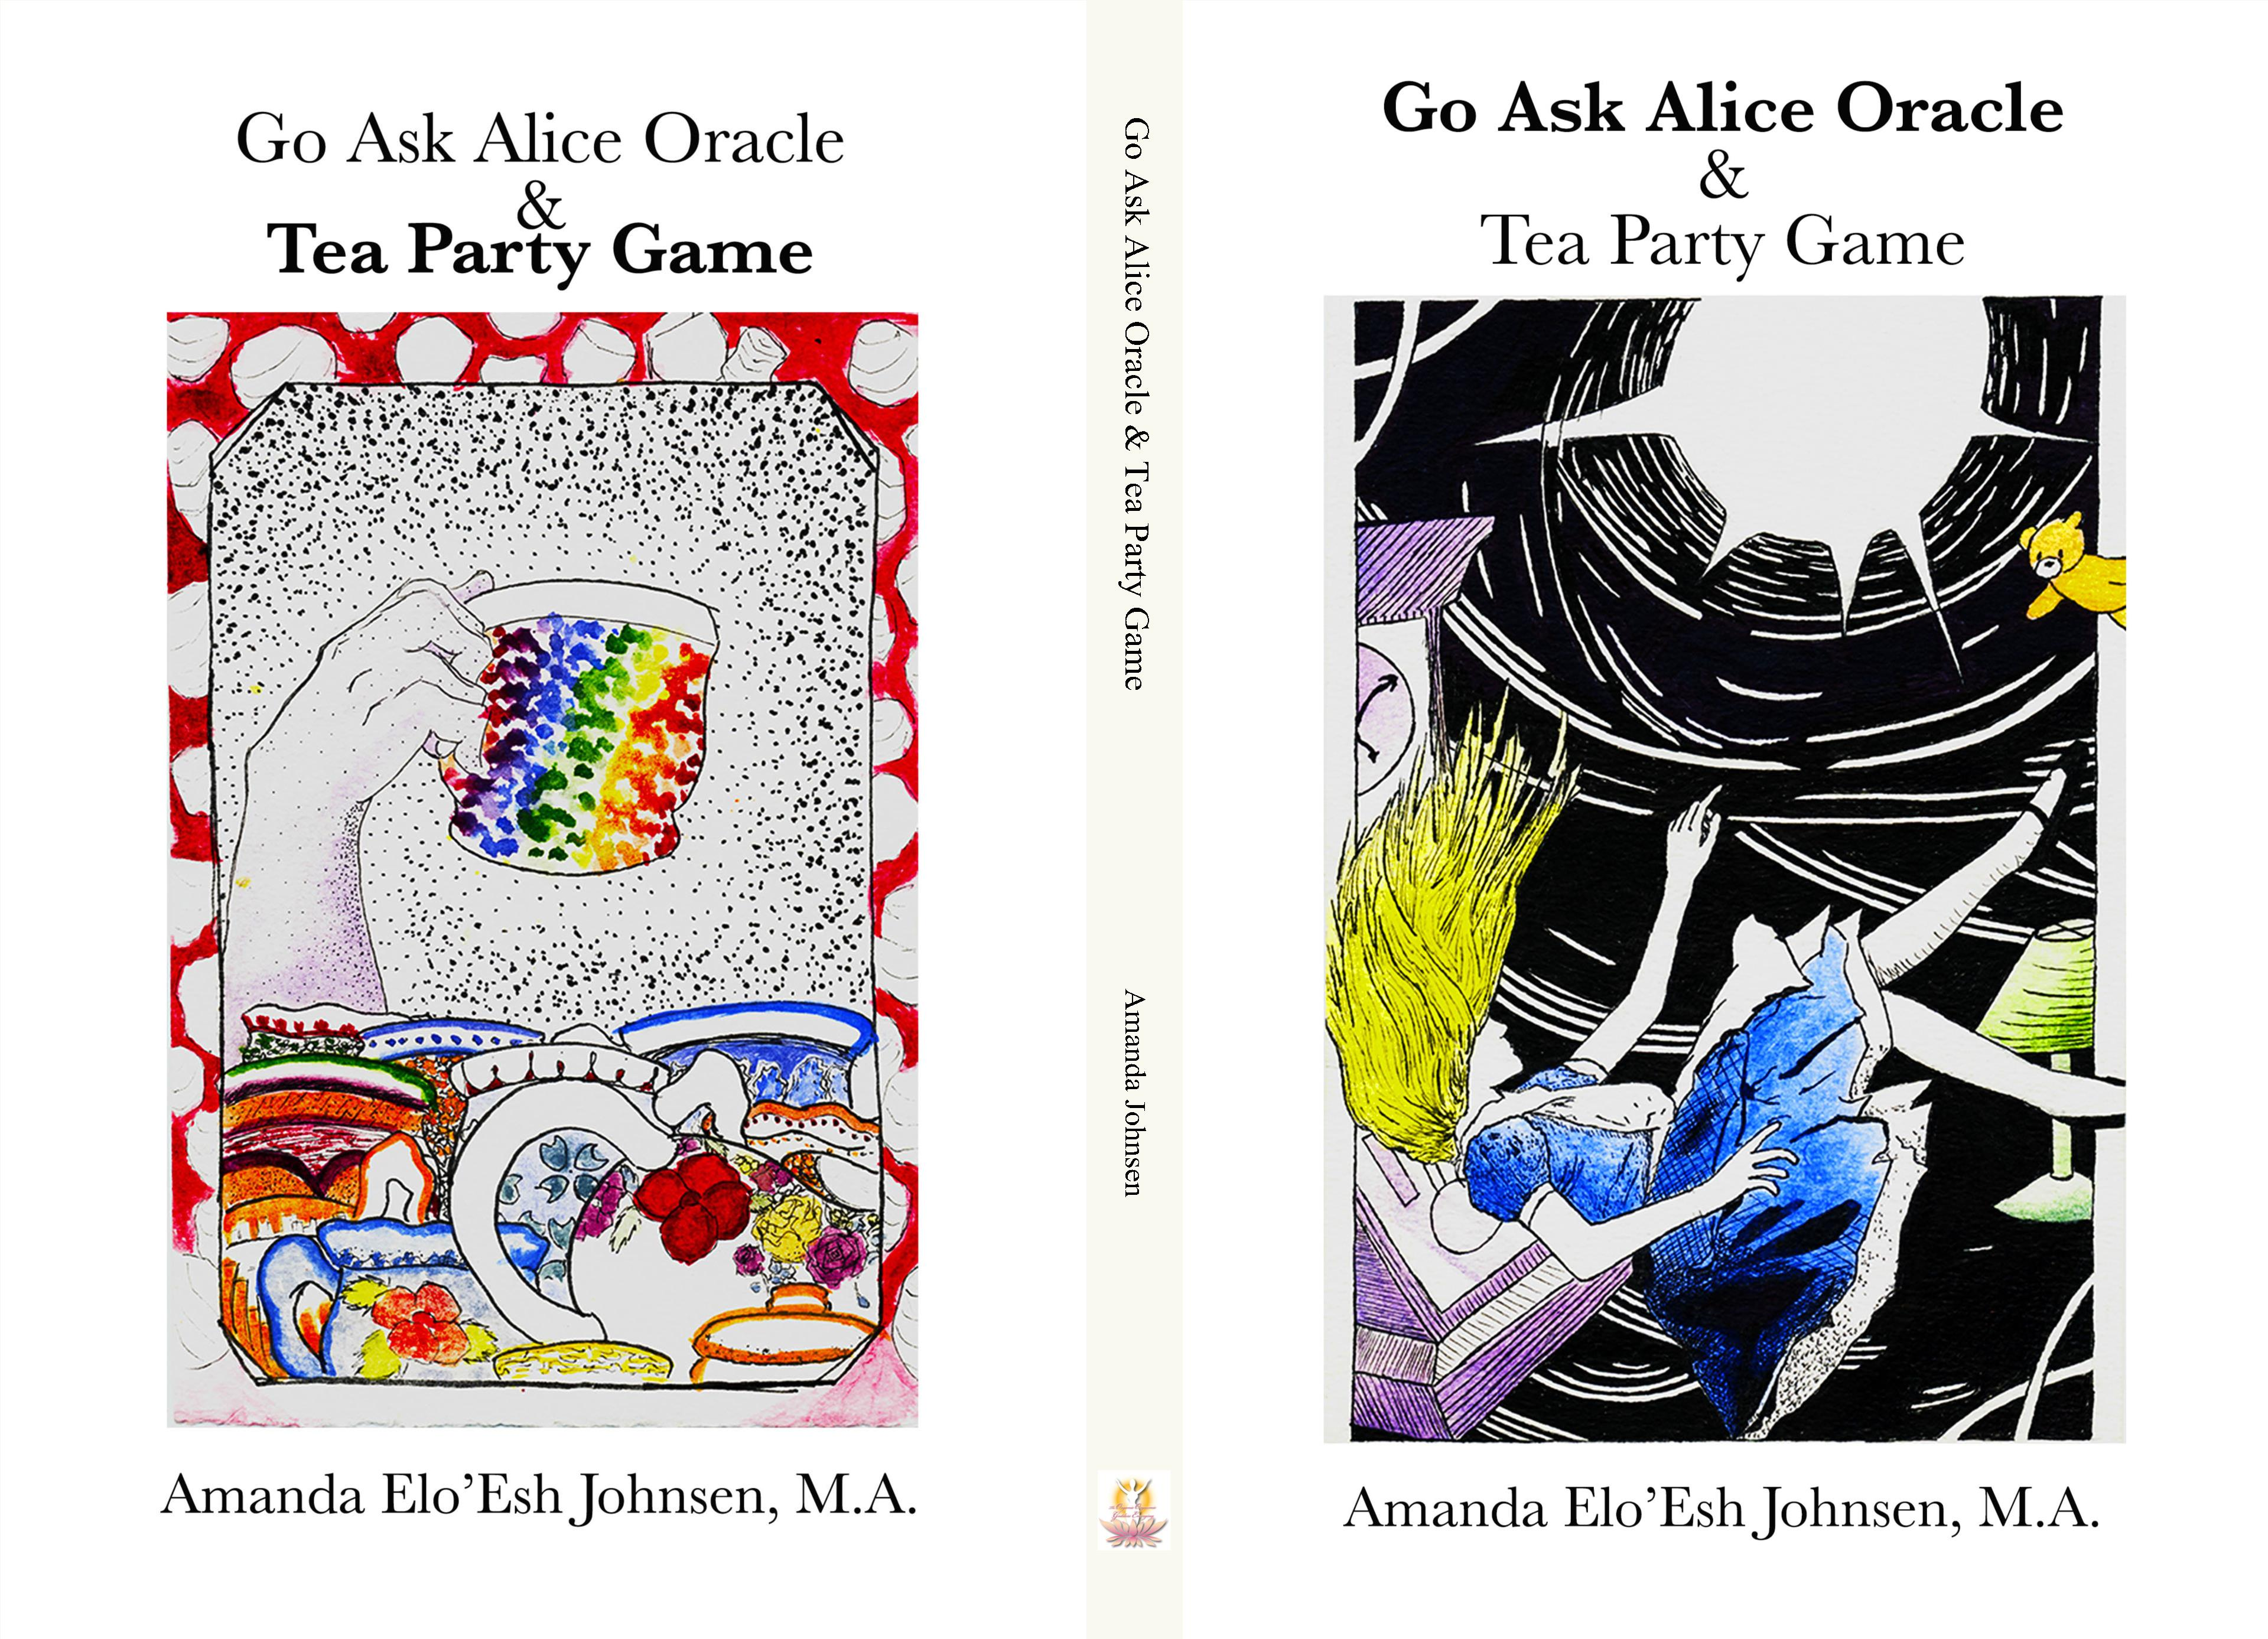 Go Ask Alice Oracle & Tea Party Game cover image